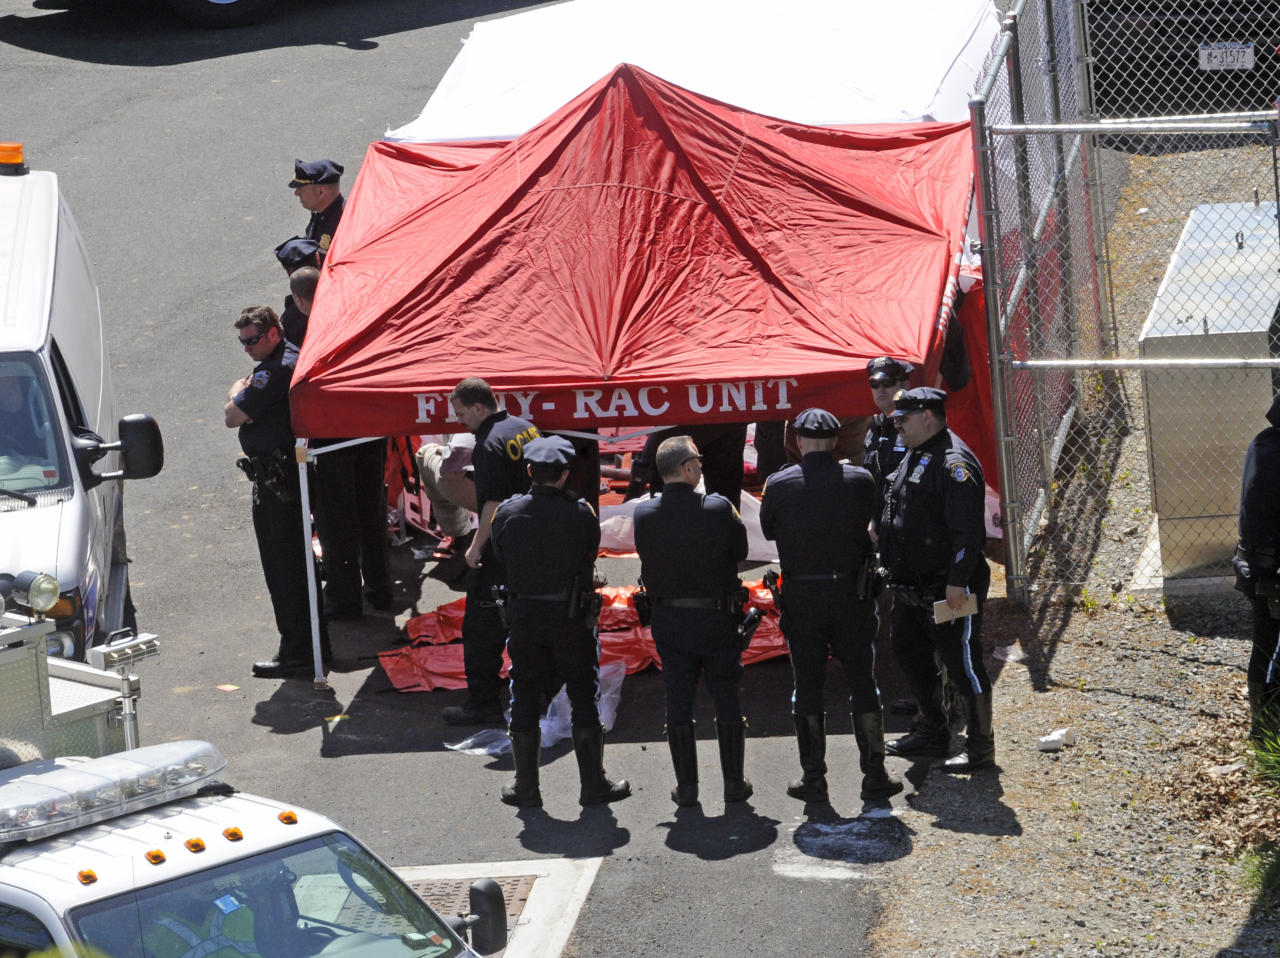 Police surround a temporarily built tent where the victims of a vehicle crash were brought, Sunday April 29, 2012, in New York. Authorities say the out-of-control van plunged off a roadway near the Bronx Zoo, killing seven people, including three children. (AP Photo/ Louis Lanzano)